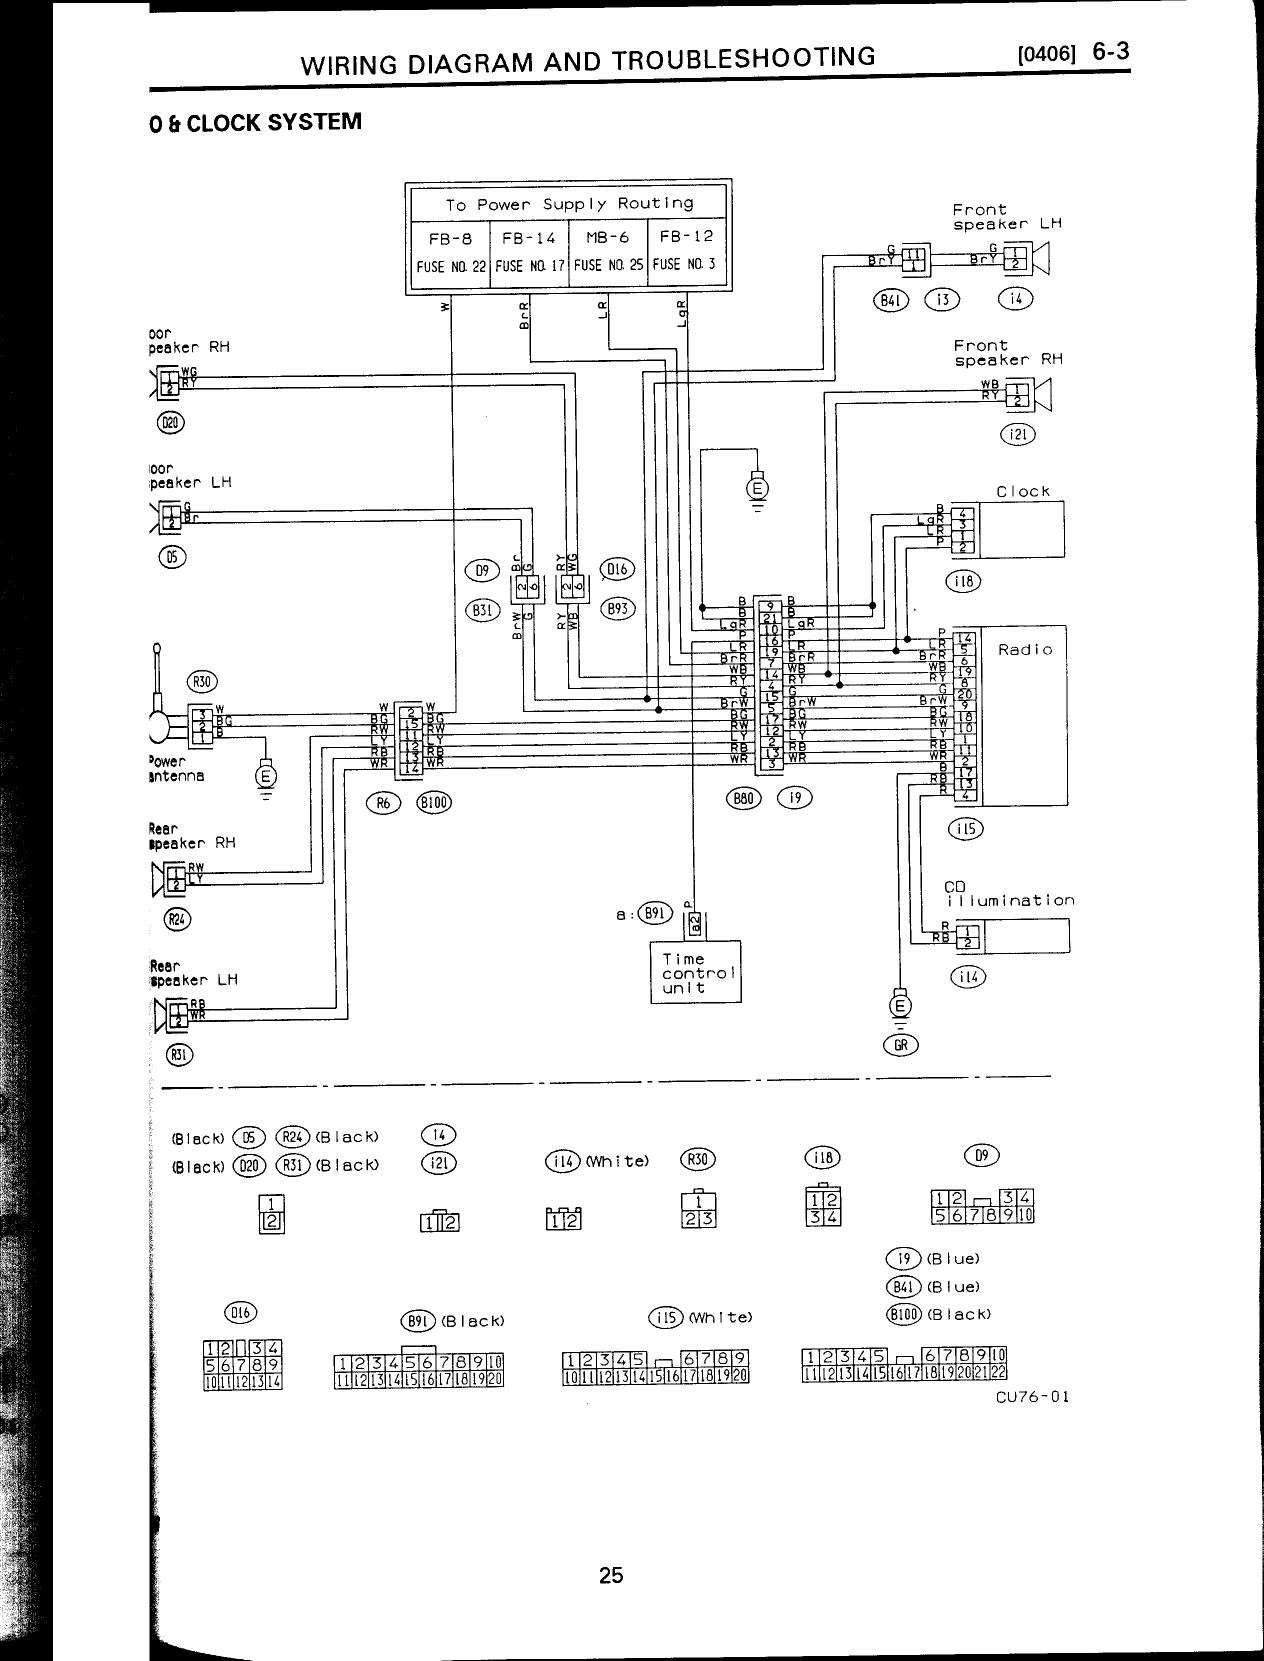 251 j SVXRadioWrg wiring diagram 2009 subaru impreza the wiring diagram 2000 subaru impreza wiring diagram at soozxer.org